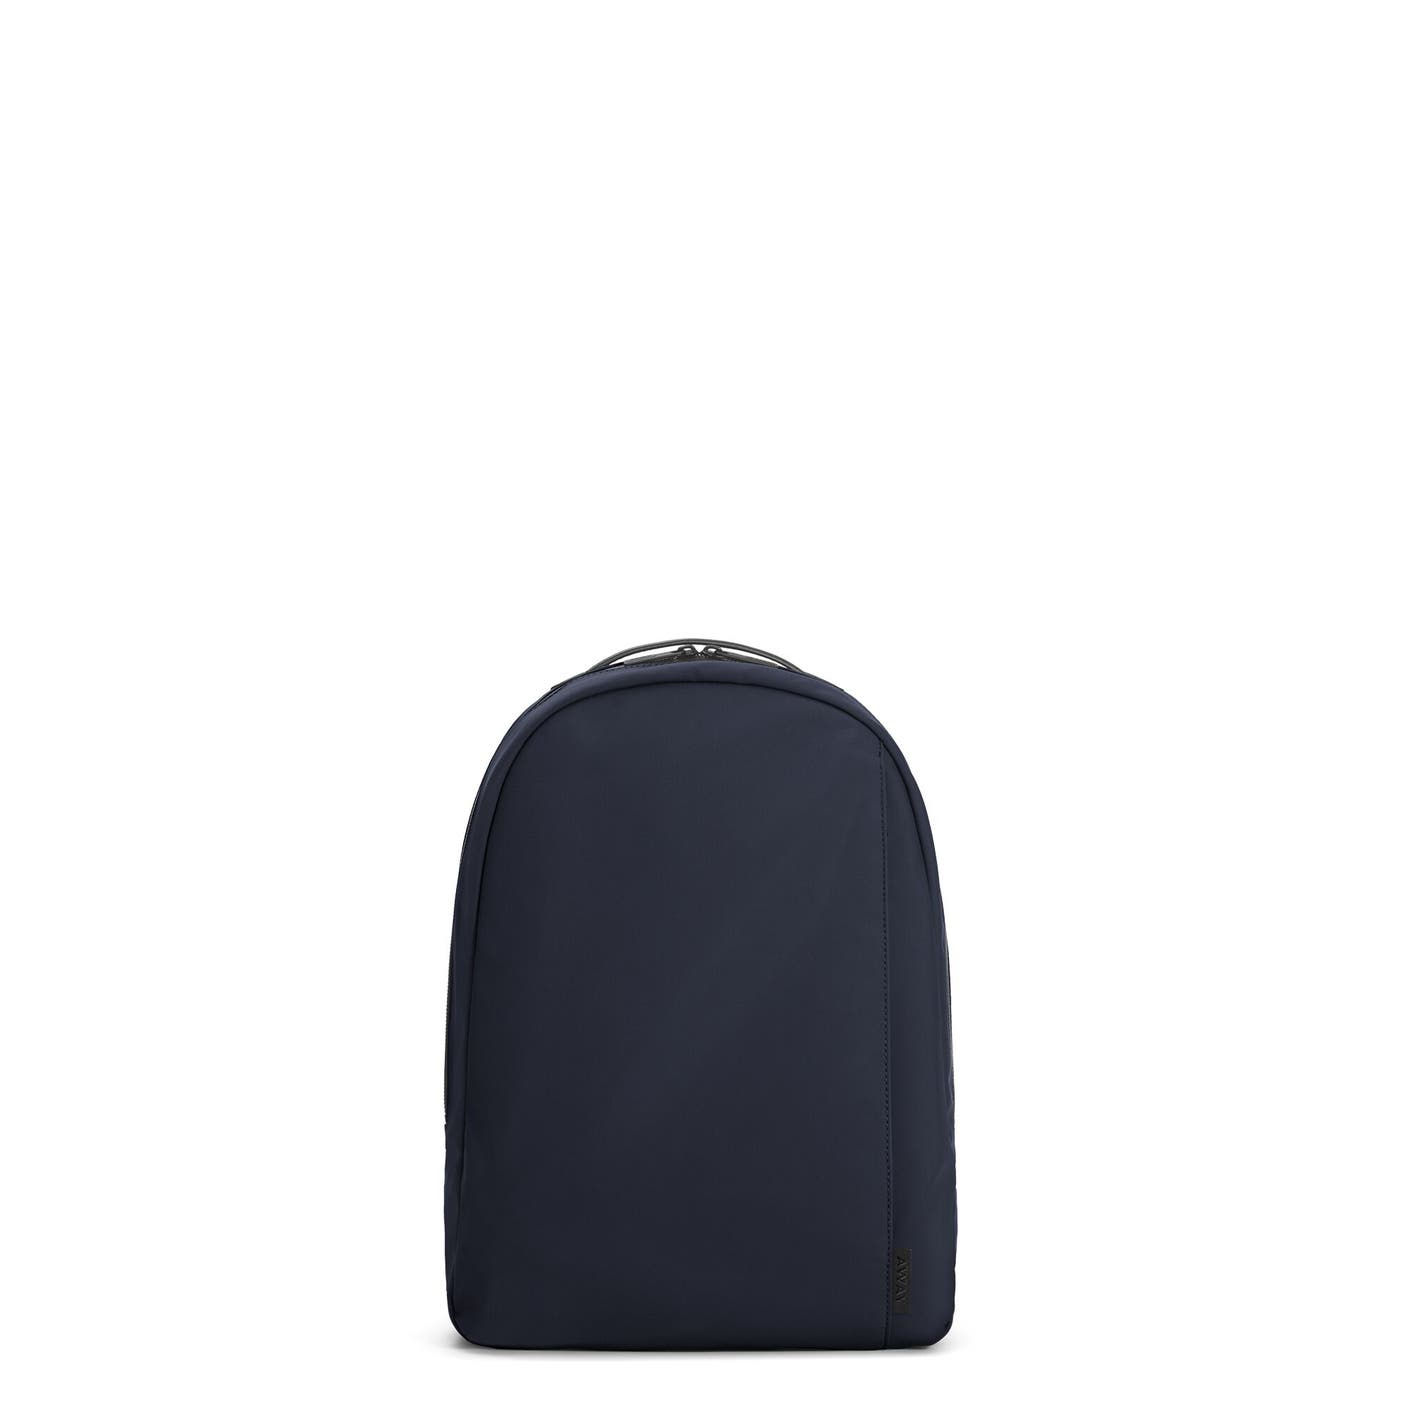 The Daypack